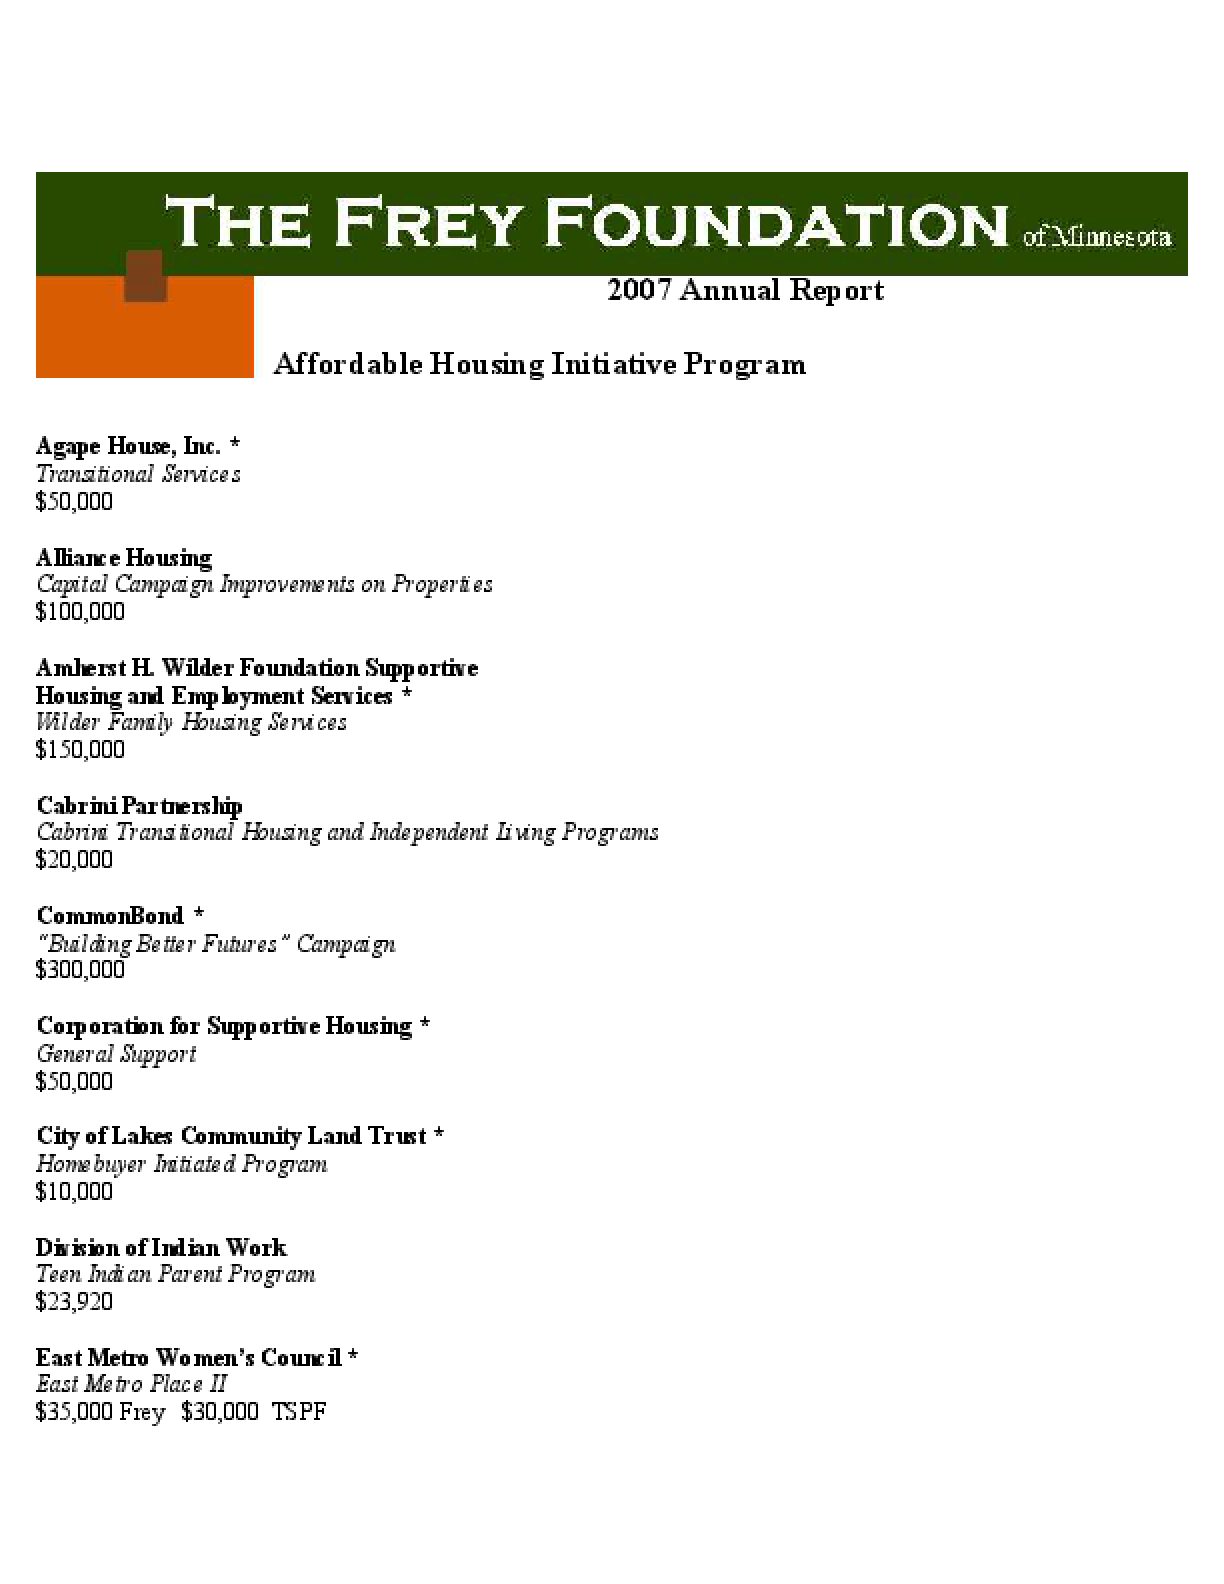 Frey Foundation - 2007 Annual Report